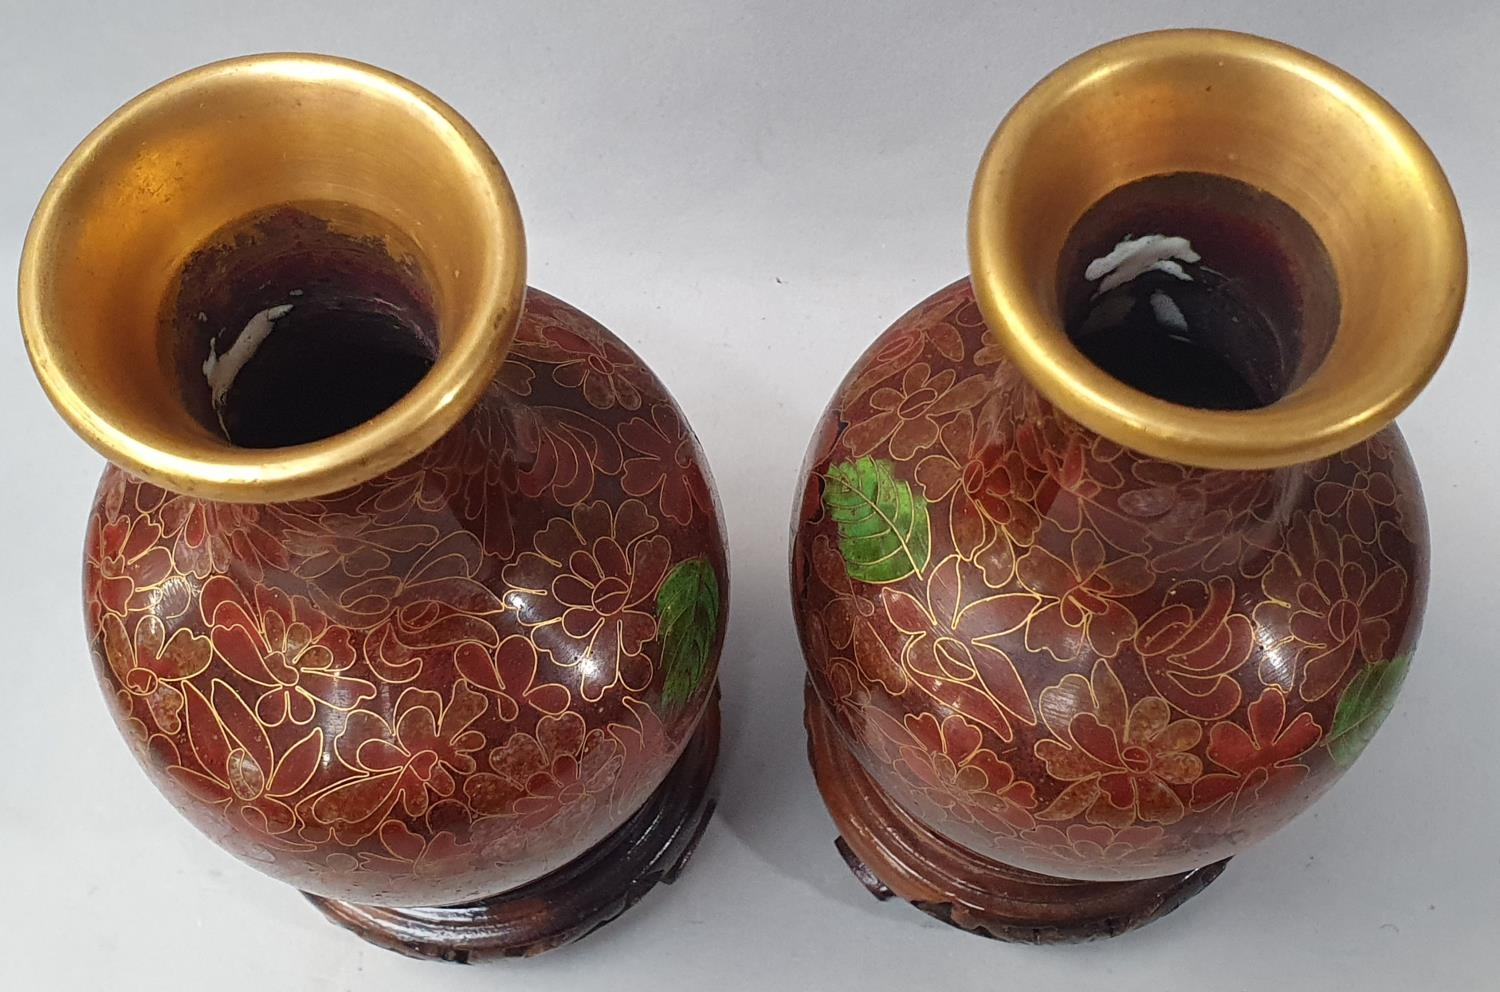 Pair of Cloisonné vases. - Image 2 of 5